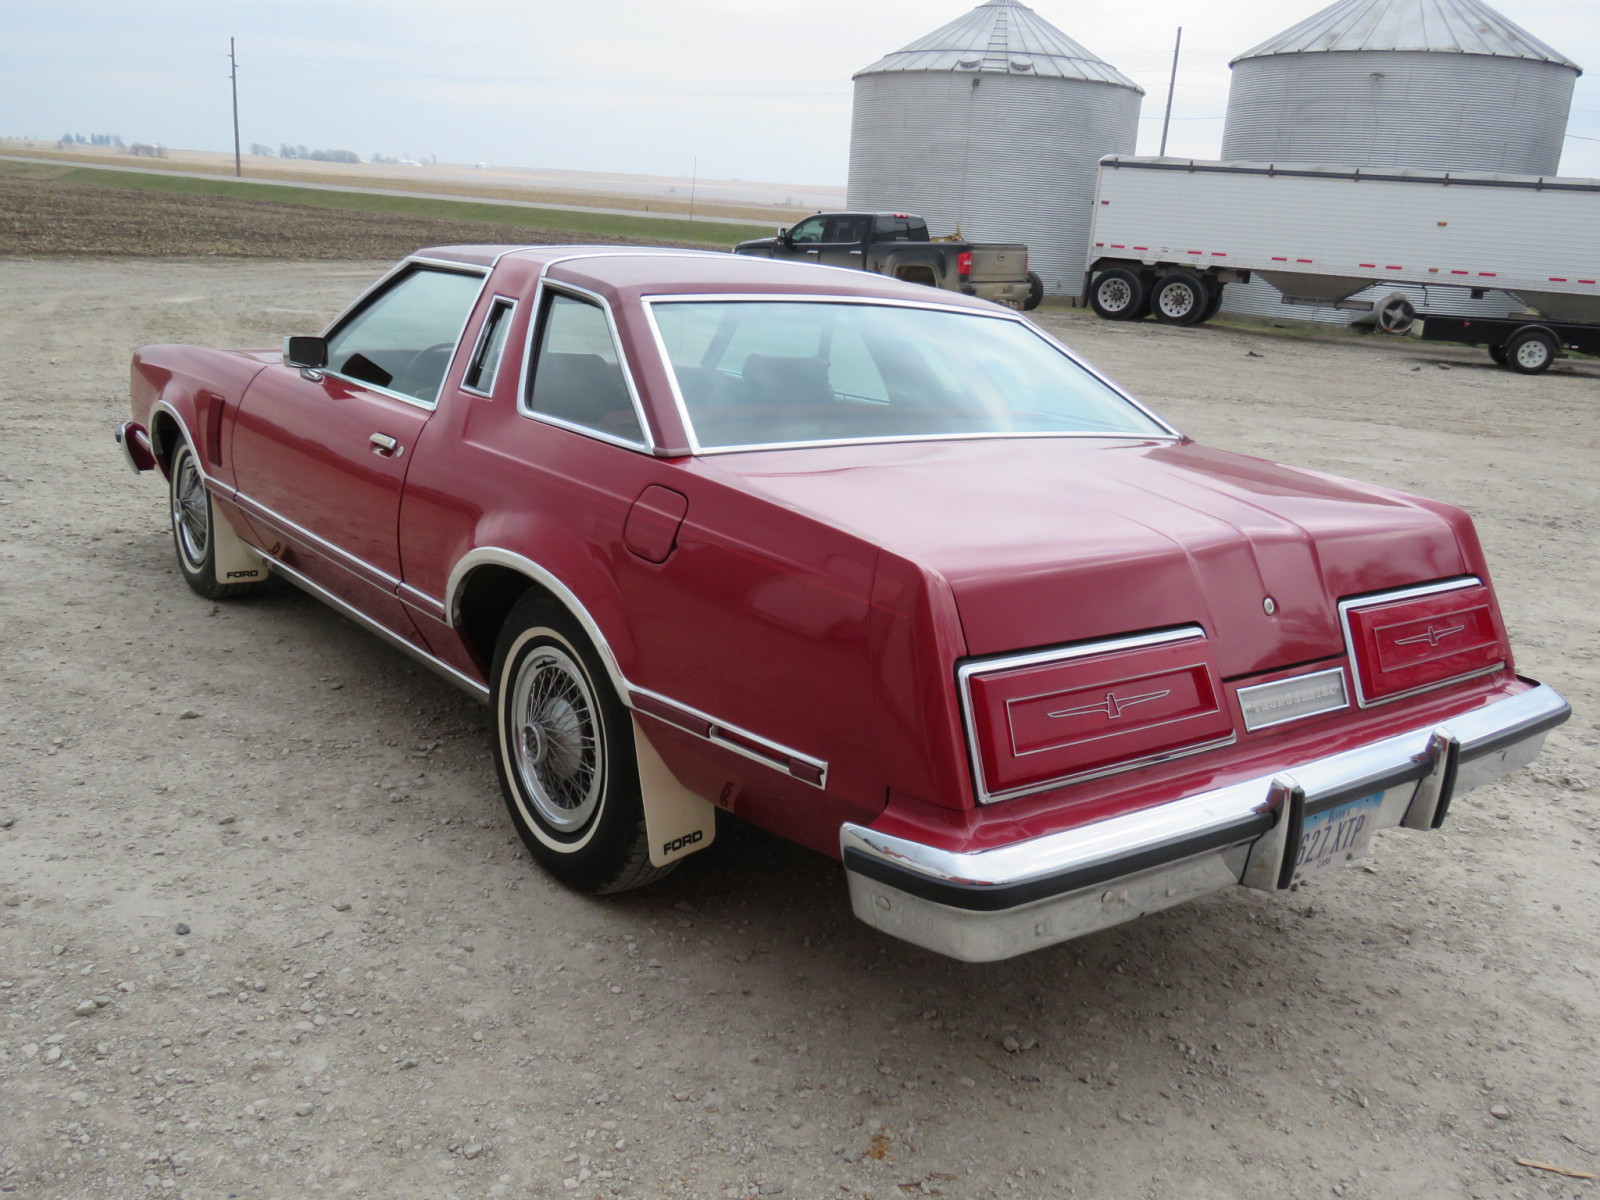 1979 Ford Thunderbird Coupe - Image 5